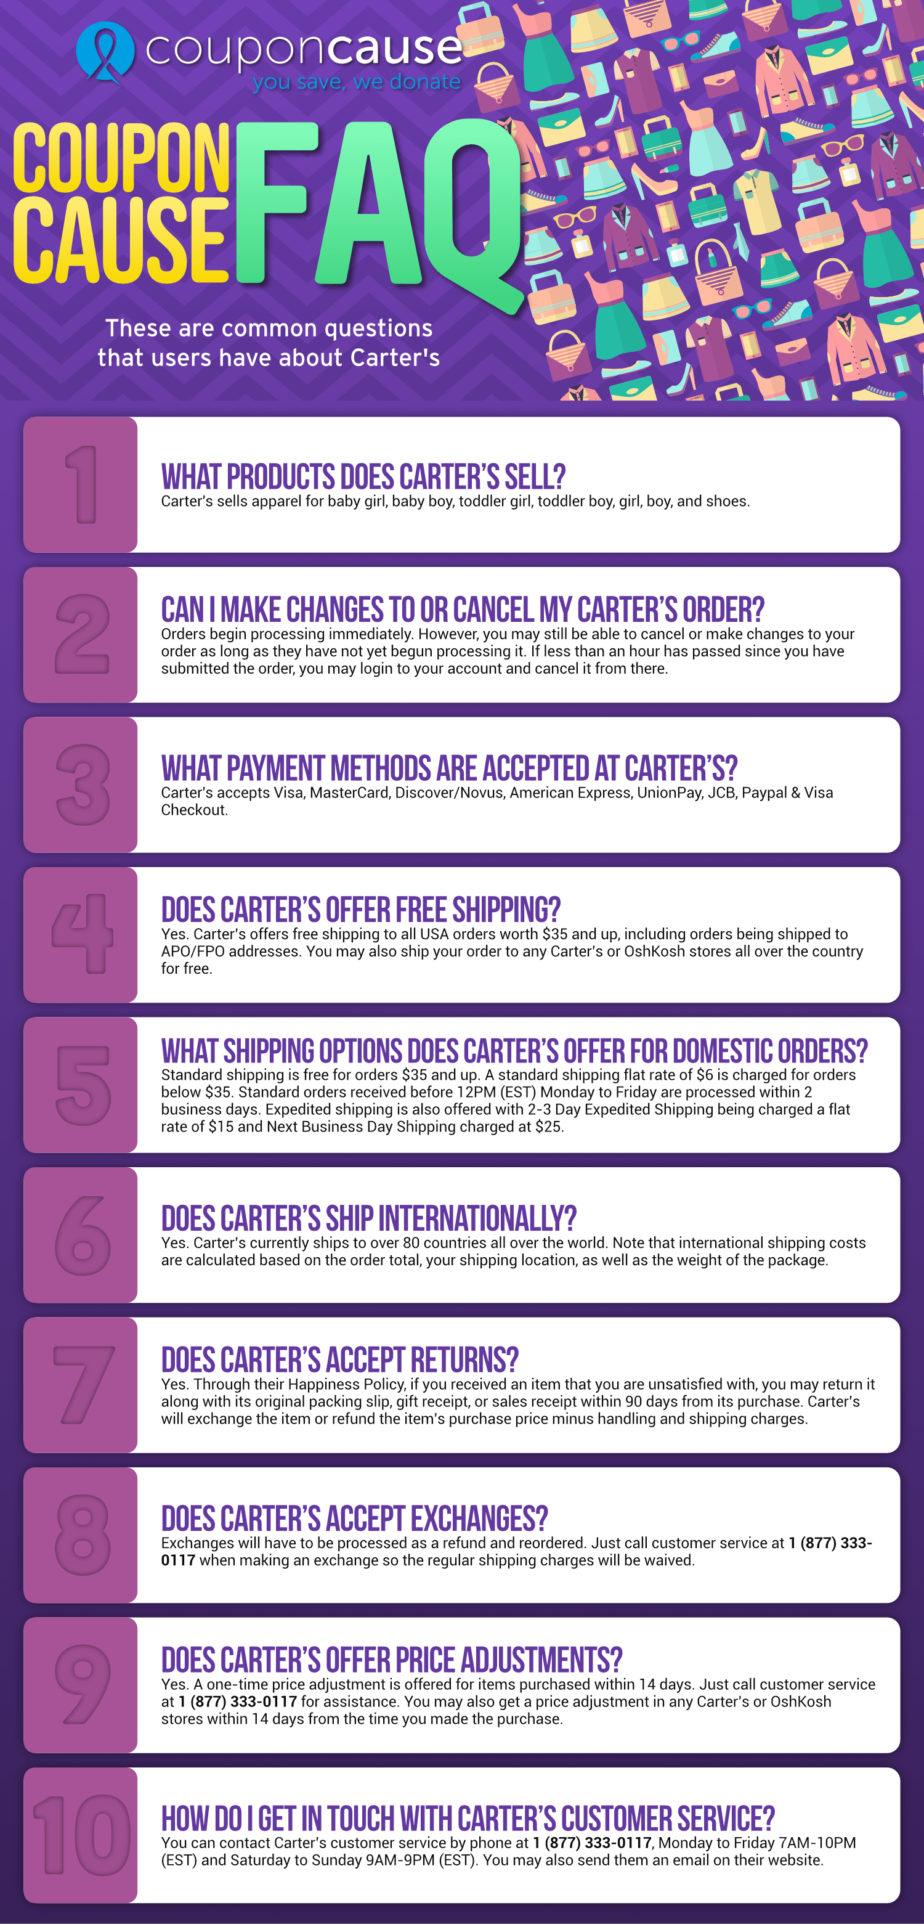 Carter's Infographic Order Coupon Cause FAQ (C.C. FAQ)